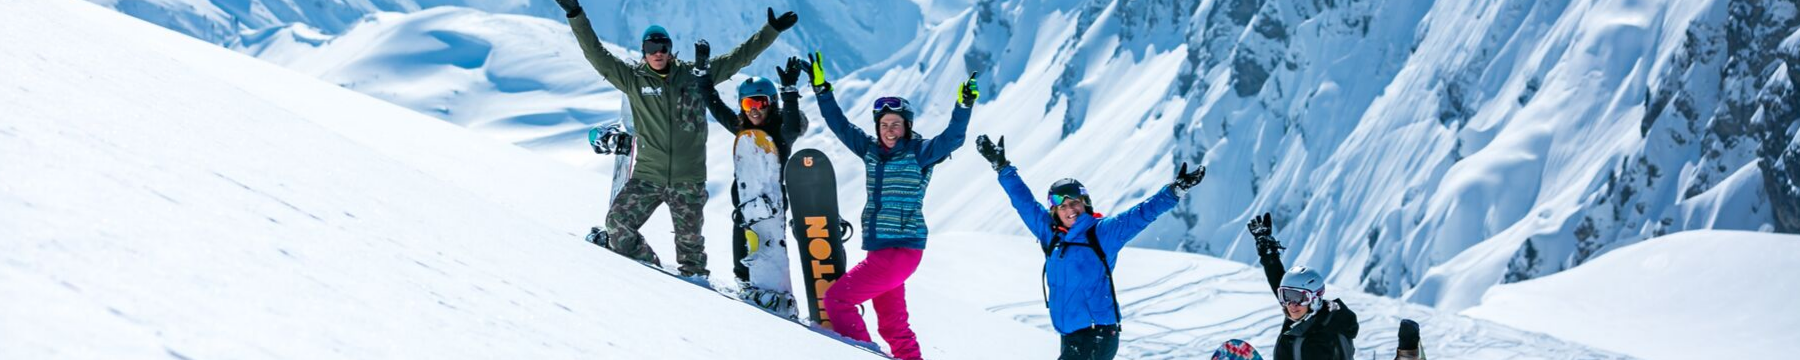 Womens Winter Sports Holidays Guide